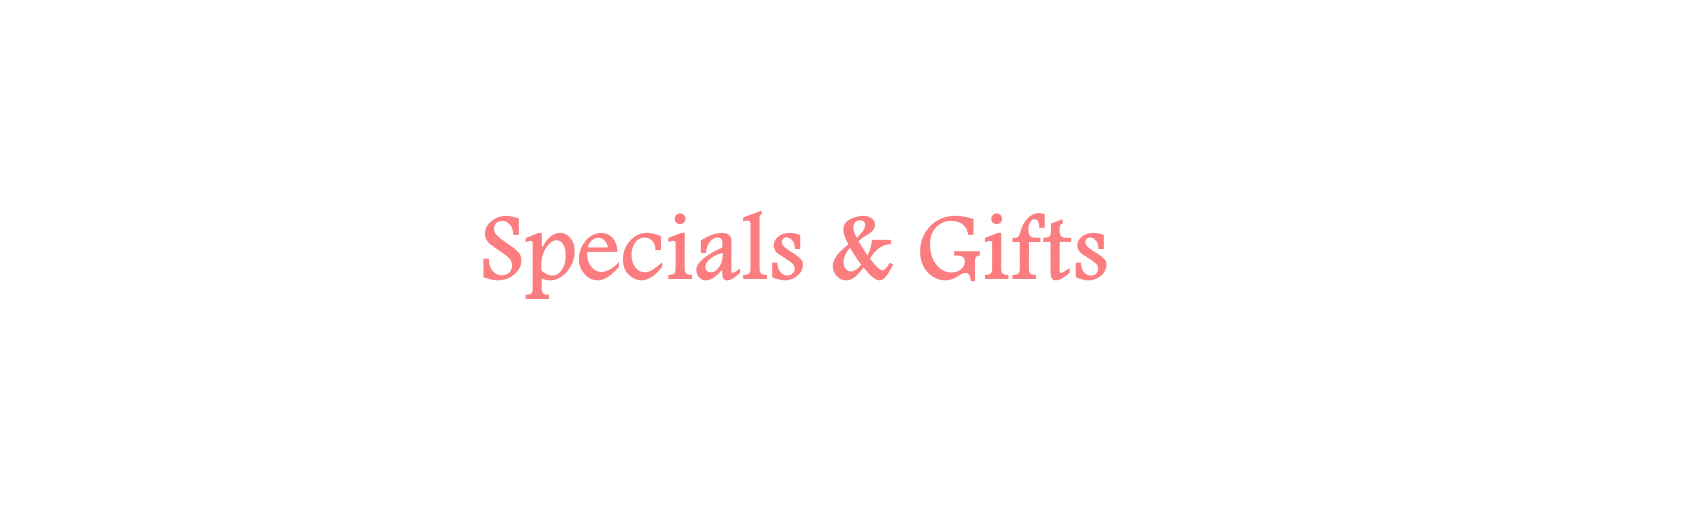 Specials & Gifts | A Way With Works | Creative Writing Workshops